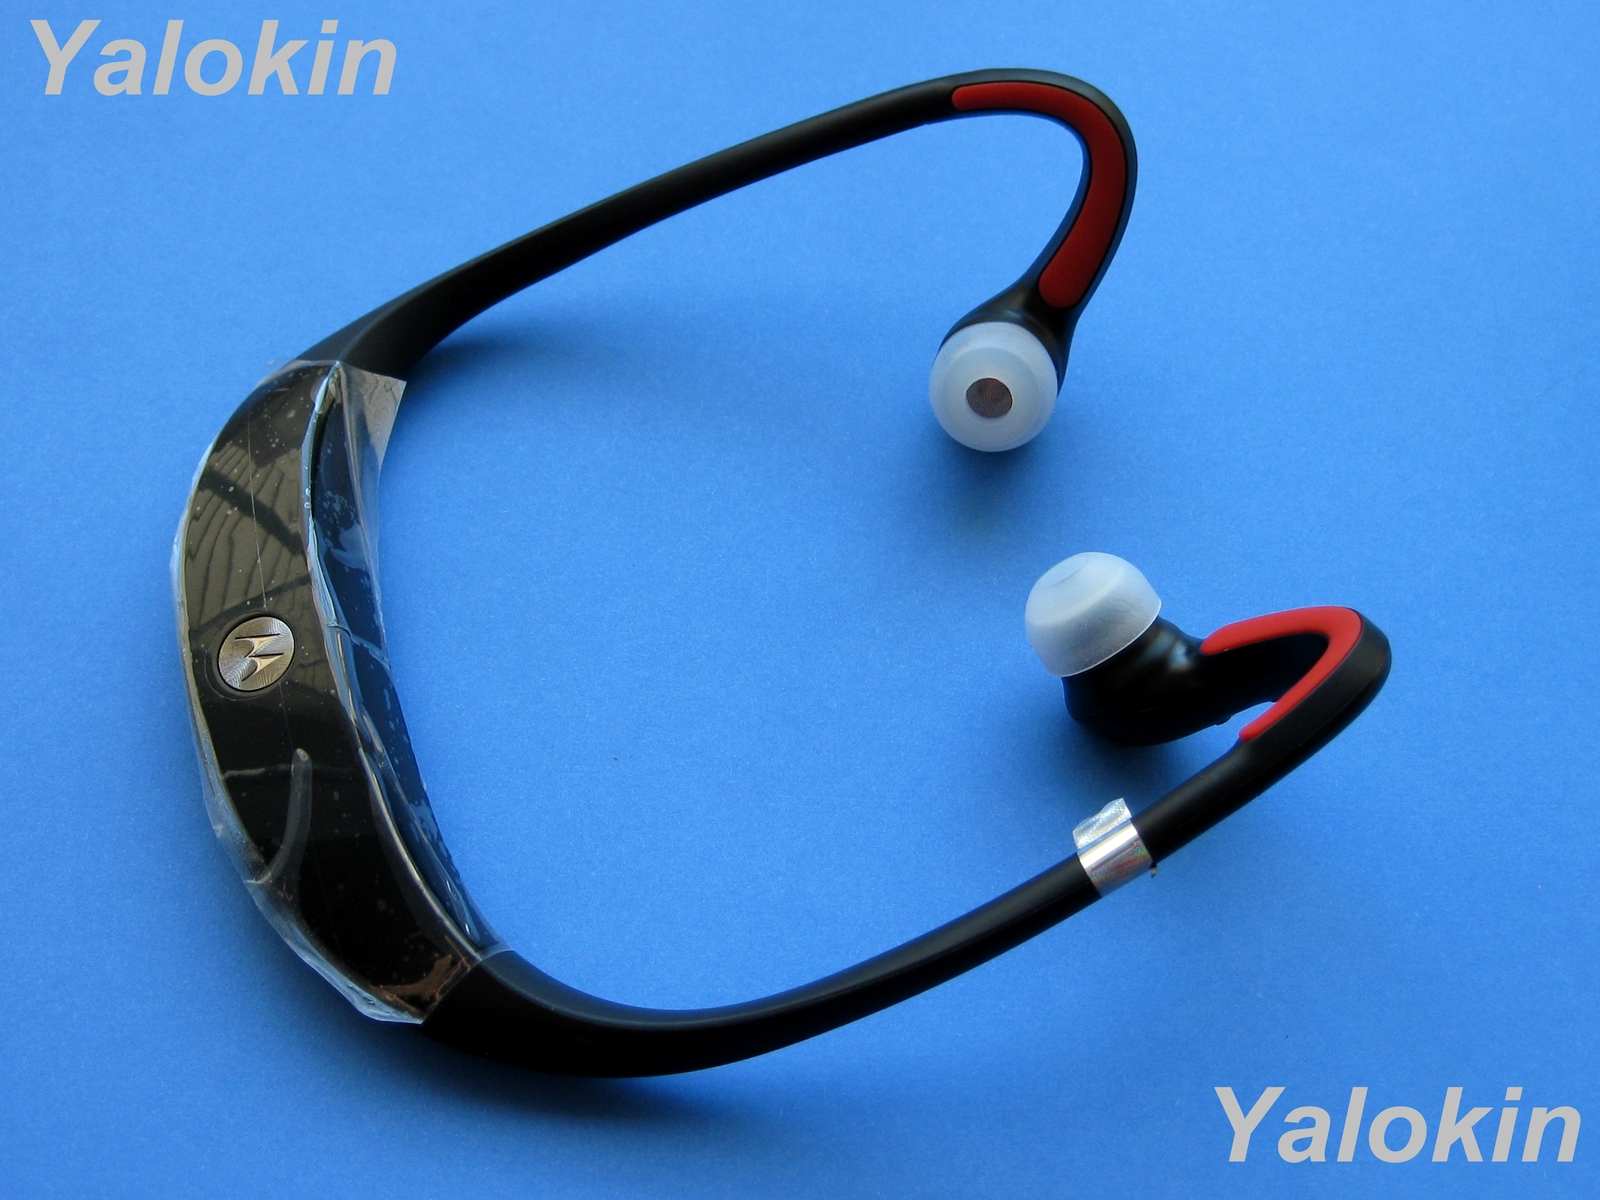 8 CL Large Replacement Earbuds tips for Motorola S10 HD Bluetooth Headphones